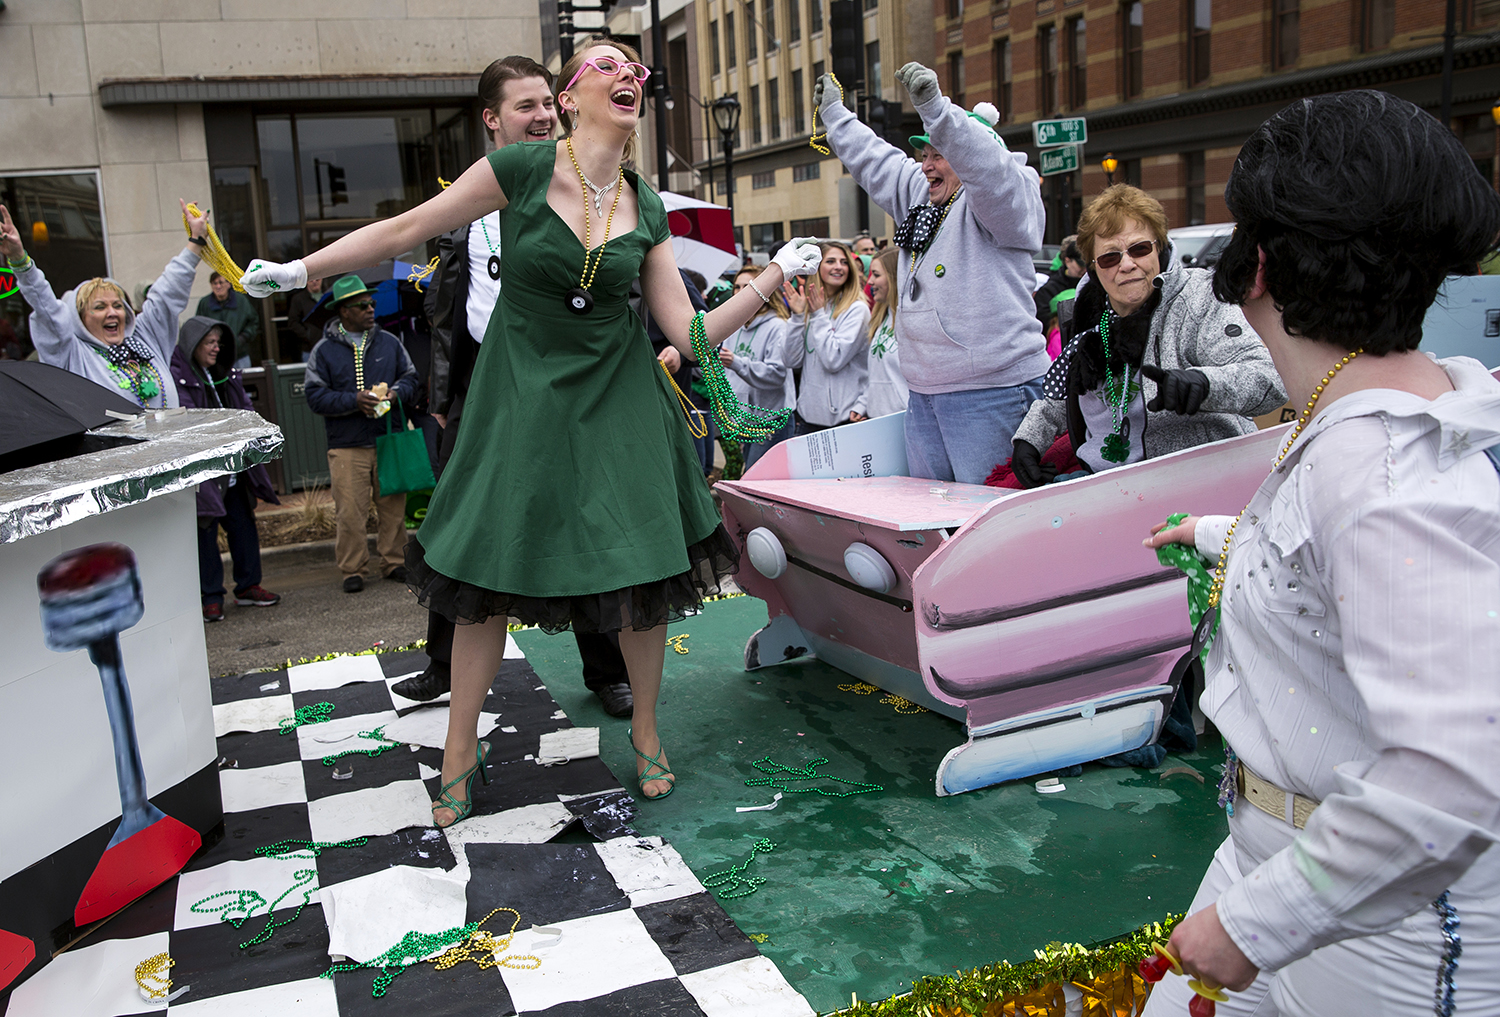 Kerri Ryan, center, and other members of the extended Ryan family celebrate when they pass the review stand and hear that their float, the Shamrock n' Roll Ryans, received first place during the St. Patrick's Day Parade Saturday, March 17, 2018  in Springfield, Ill. [Rich Saal/The State Journal-Register]